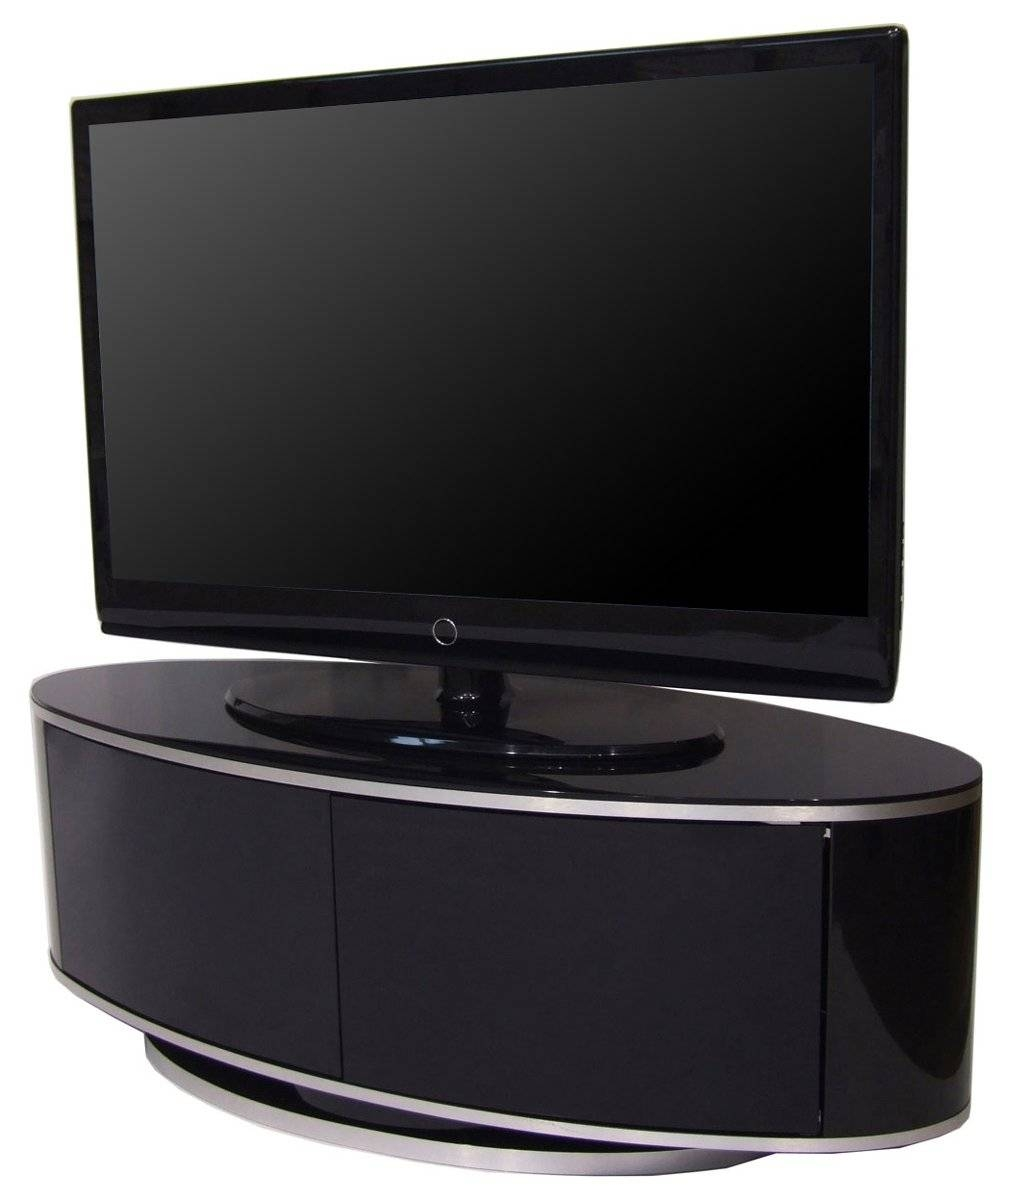 Luna High Gloss Black Oval Tv Cabinet with regard to Black Corner Tv Cabinets (Image 9 of 15)